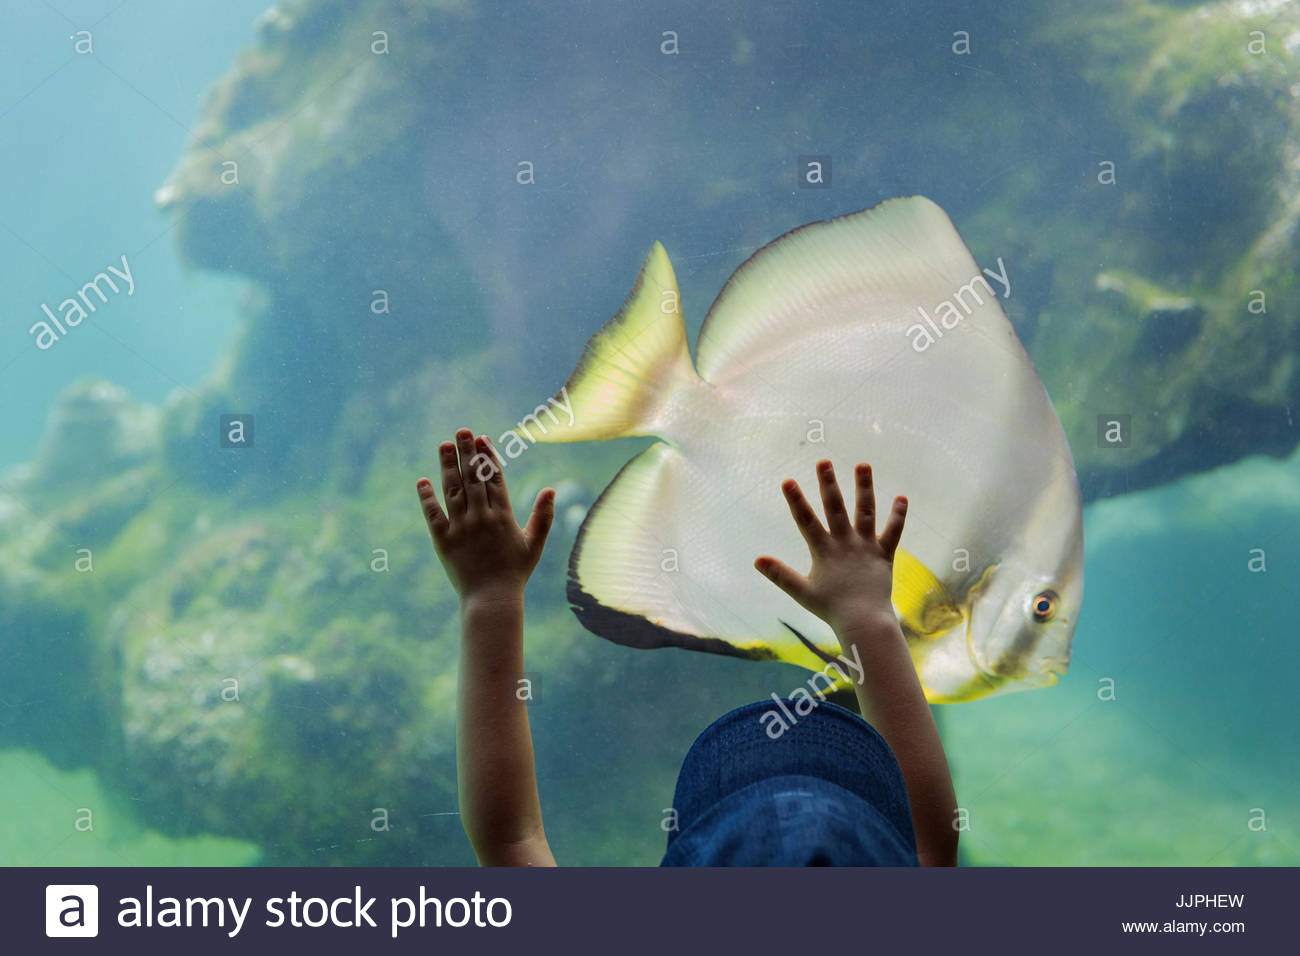 A child visiting an aquarium placing his hands on a large glass wall into a pool with marine life and a parrot fish. - Stock Image